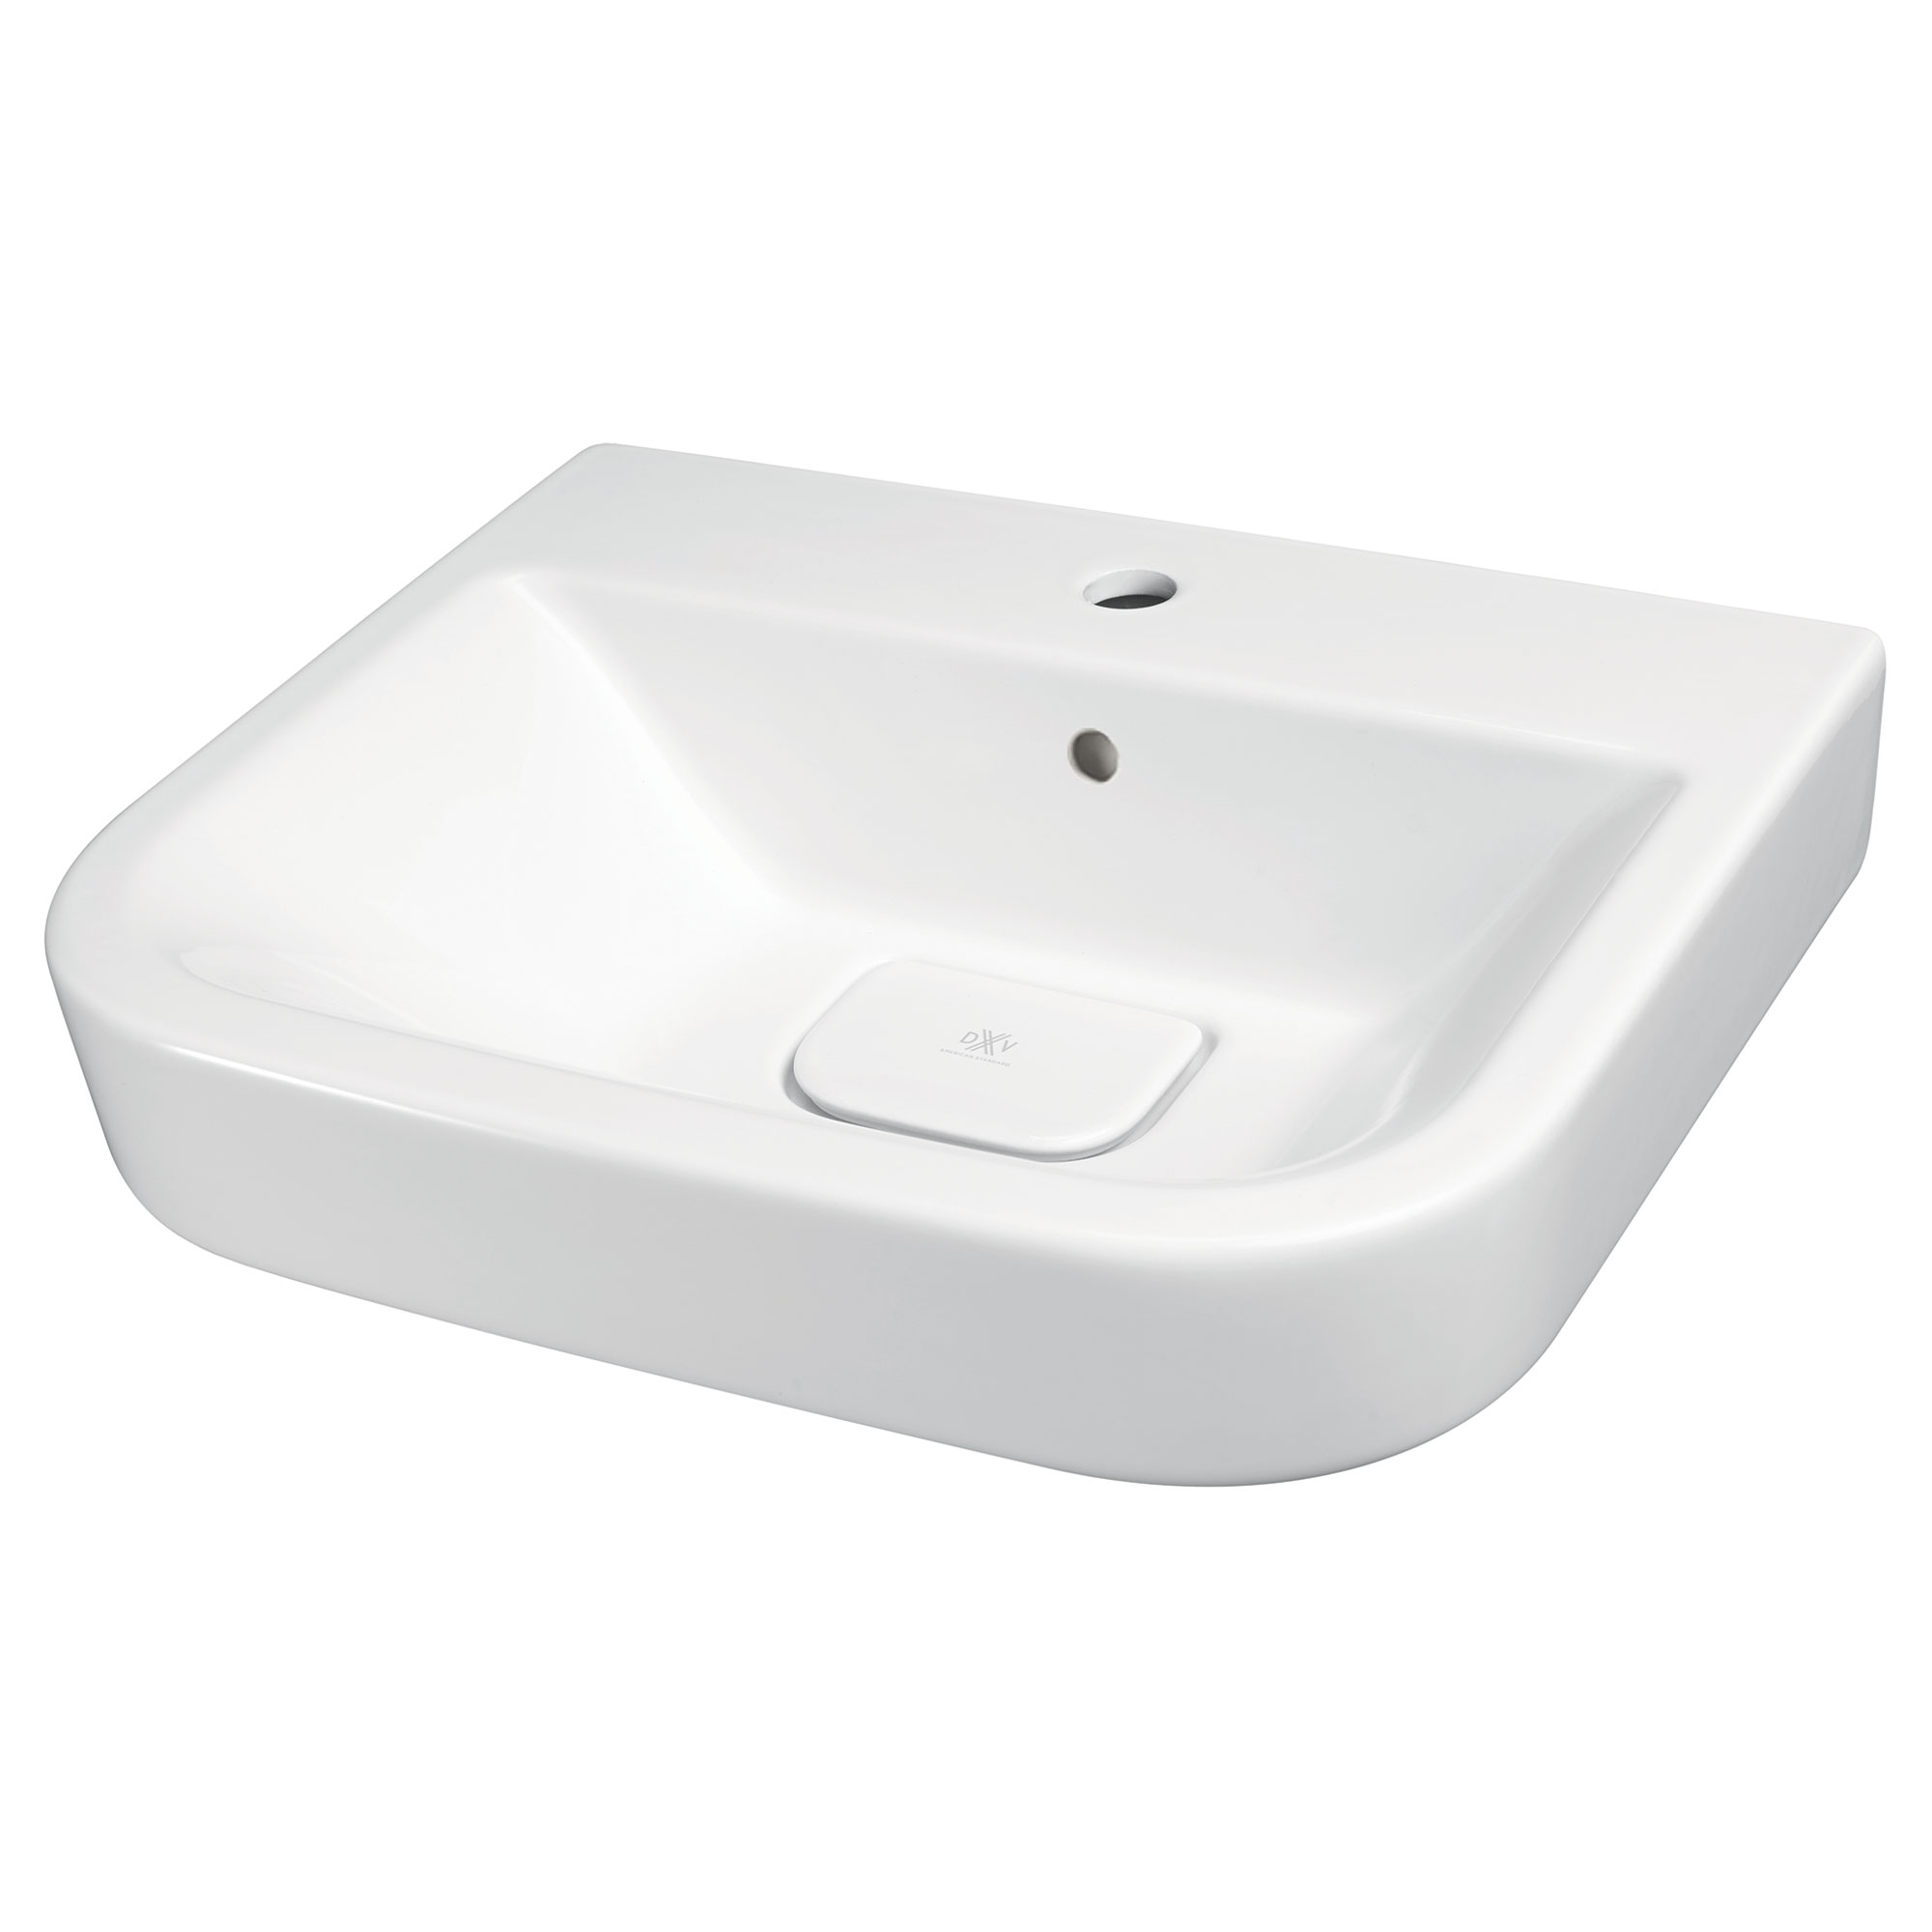 Lyndon 22-inch Single Hole Wall-Hung Bathroom Sink - Projects Model